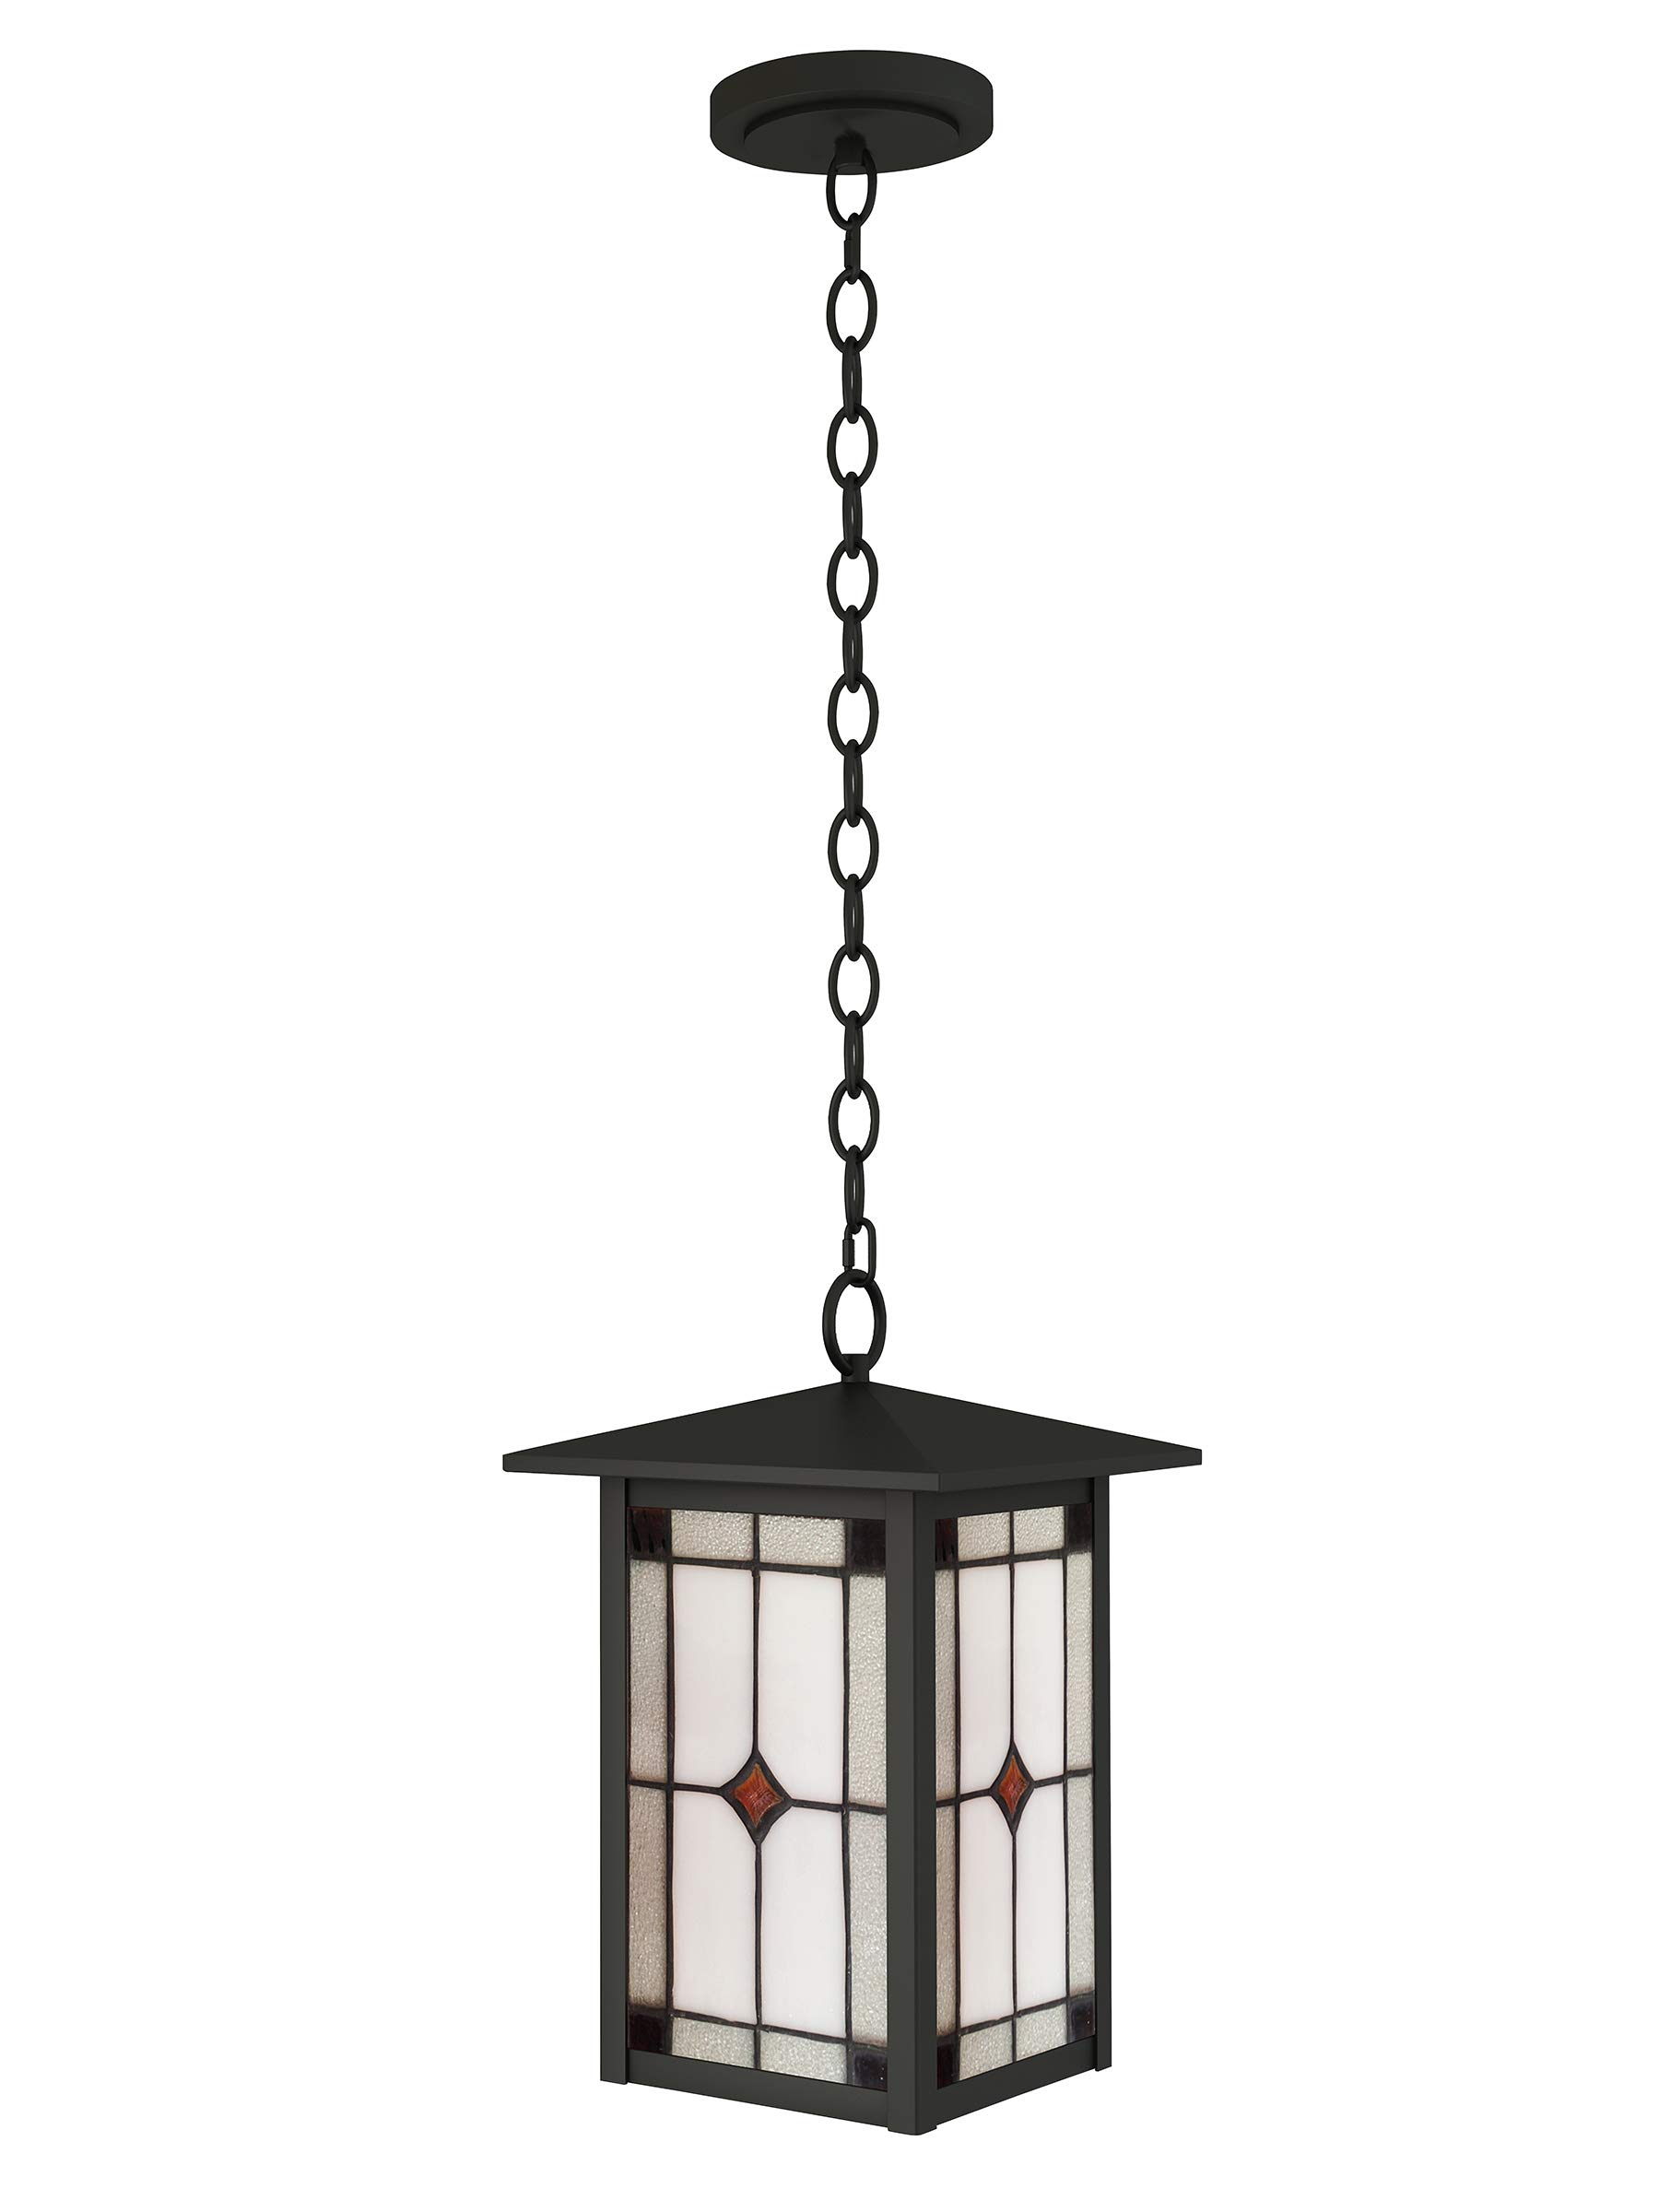 Dale Tiffany STH16131 Mayan Outdoor Tiffany Mini Pendant Mica Black